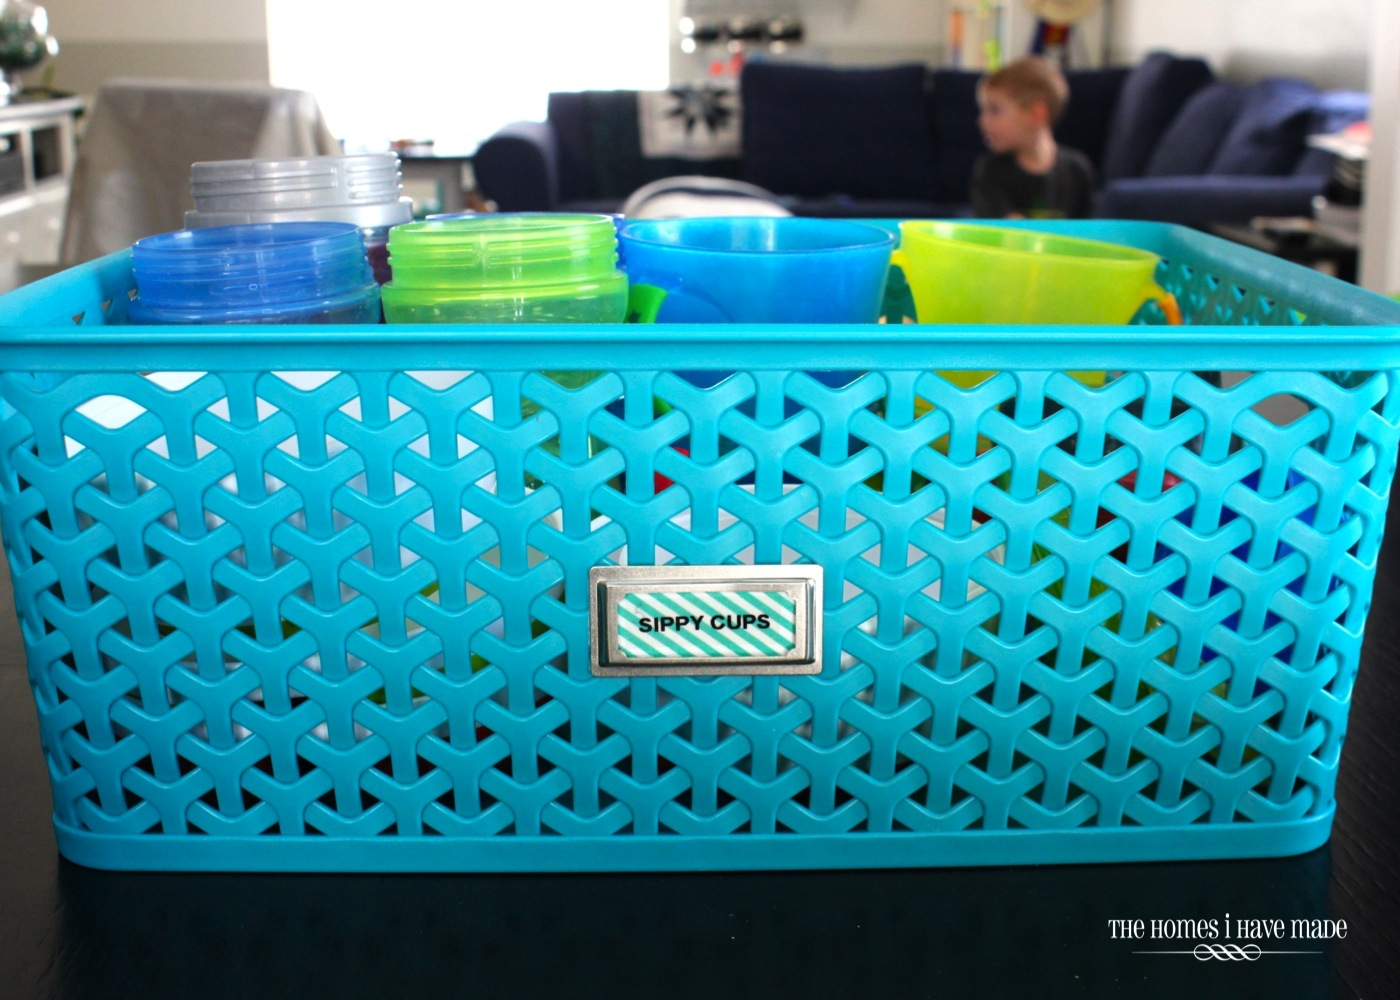 blue basket containing blue and green sippy cups